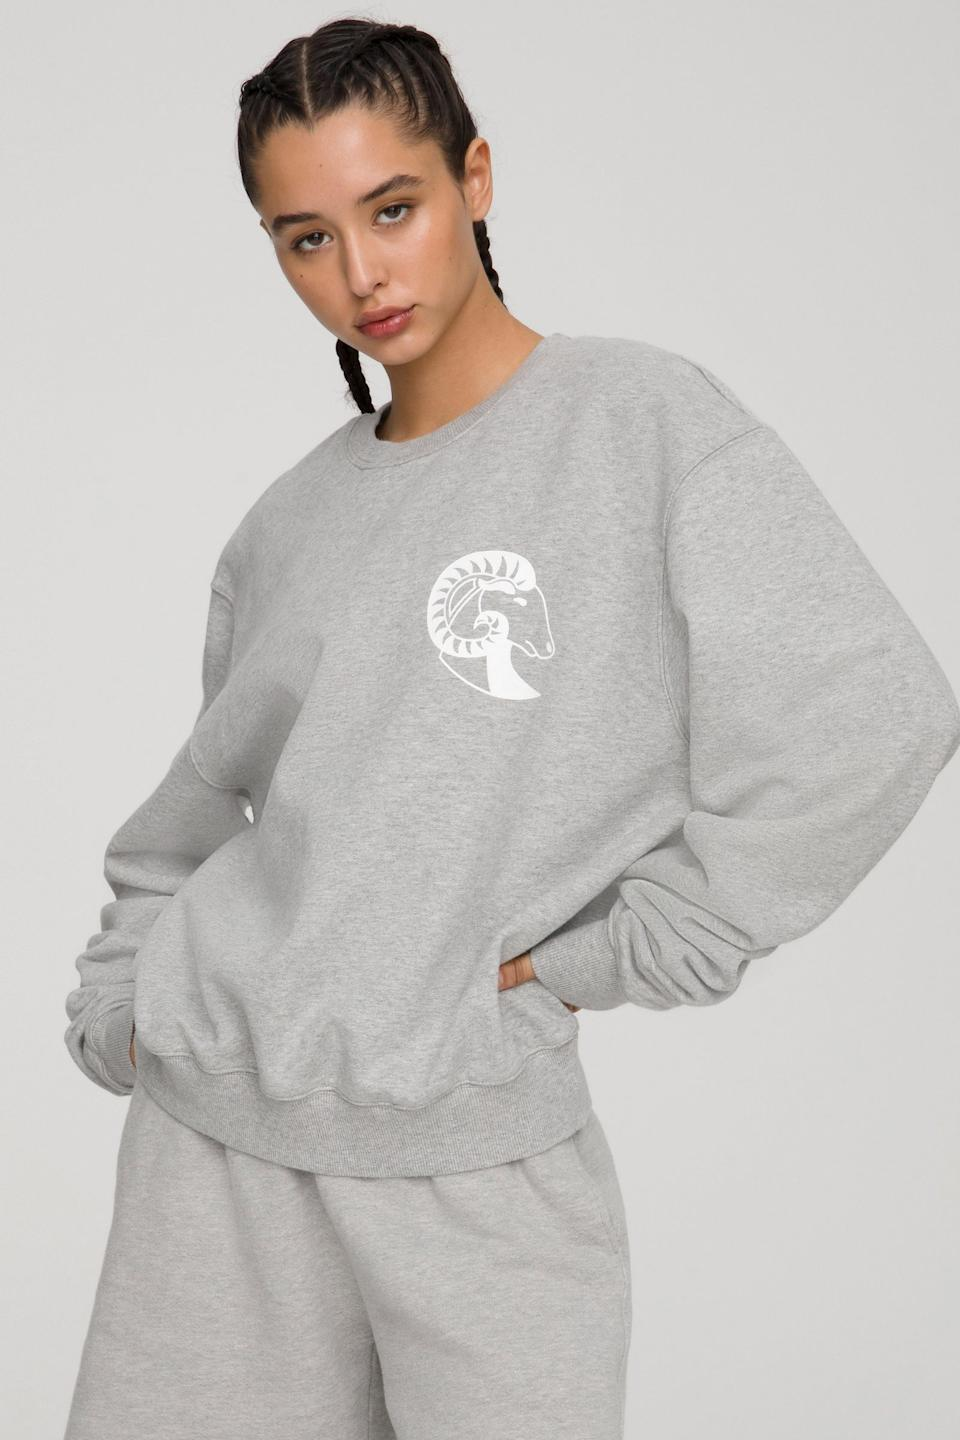 The Sagittarius Zodiac Set by Good American. Sweatshirt, $124 and sweatpants, $105.